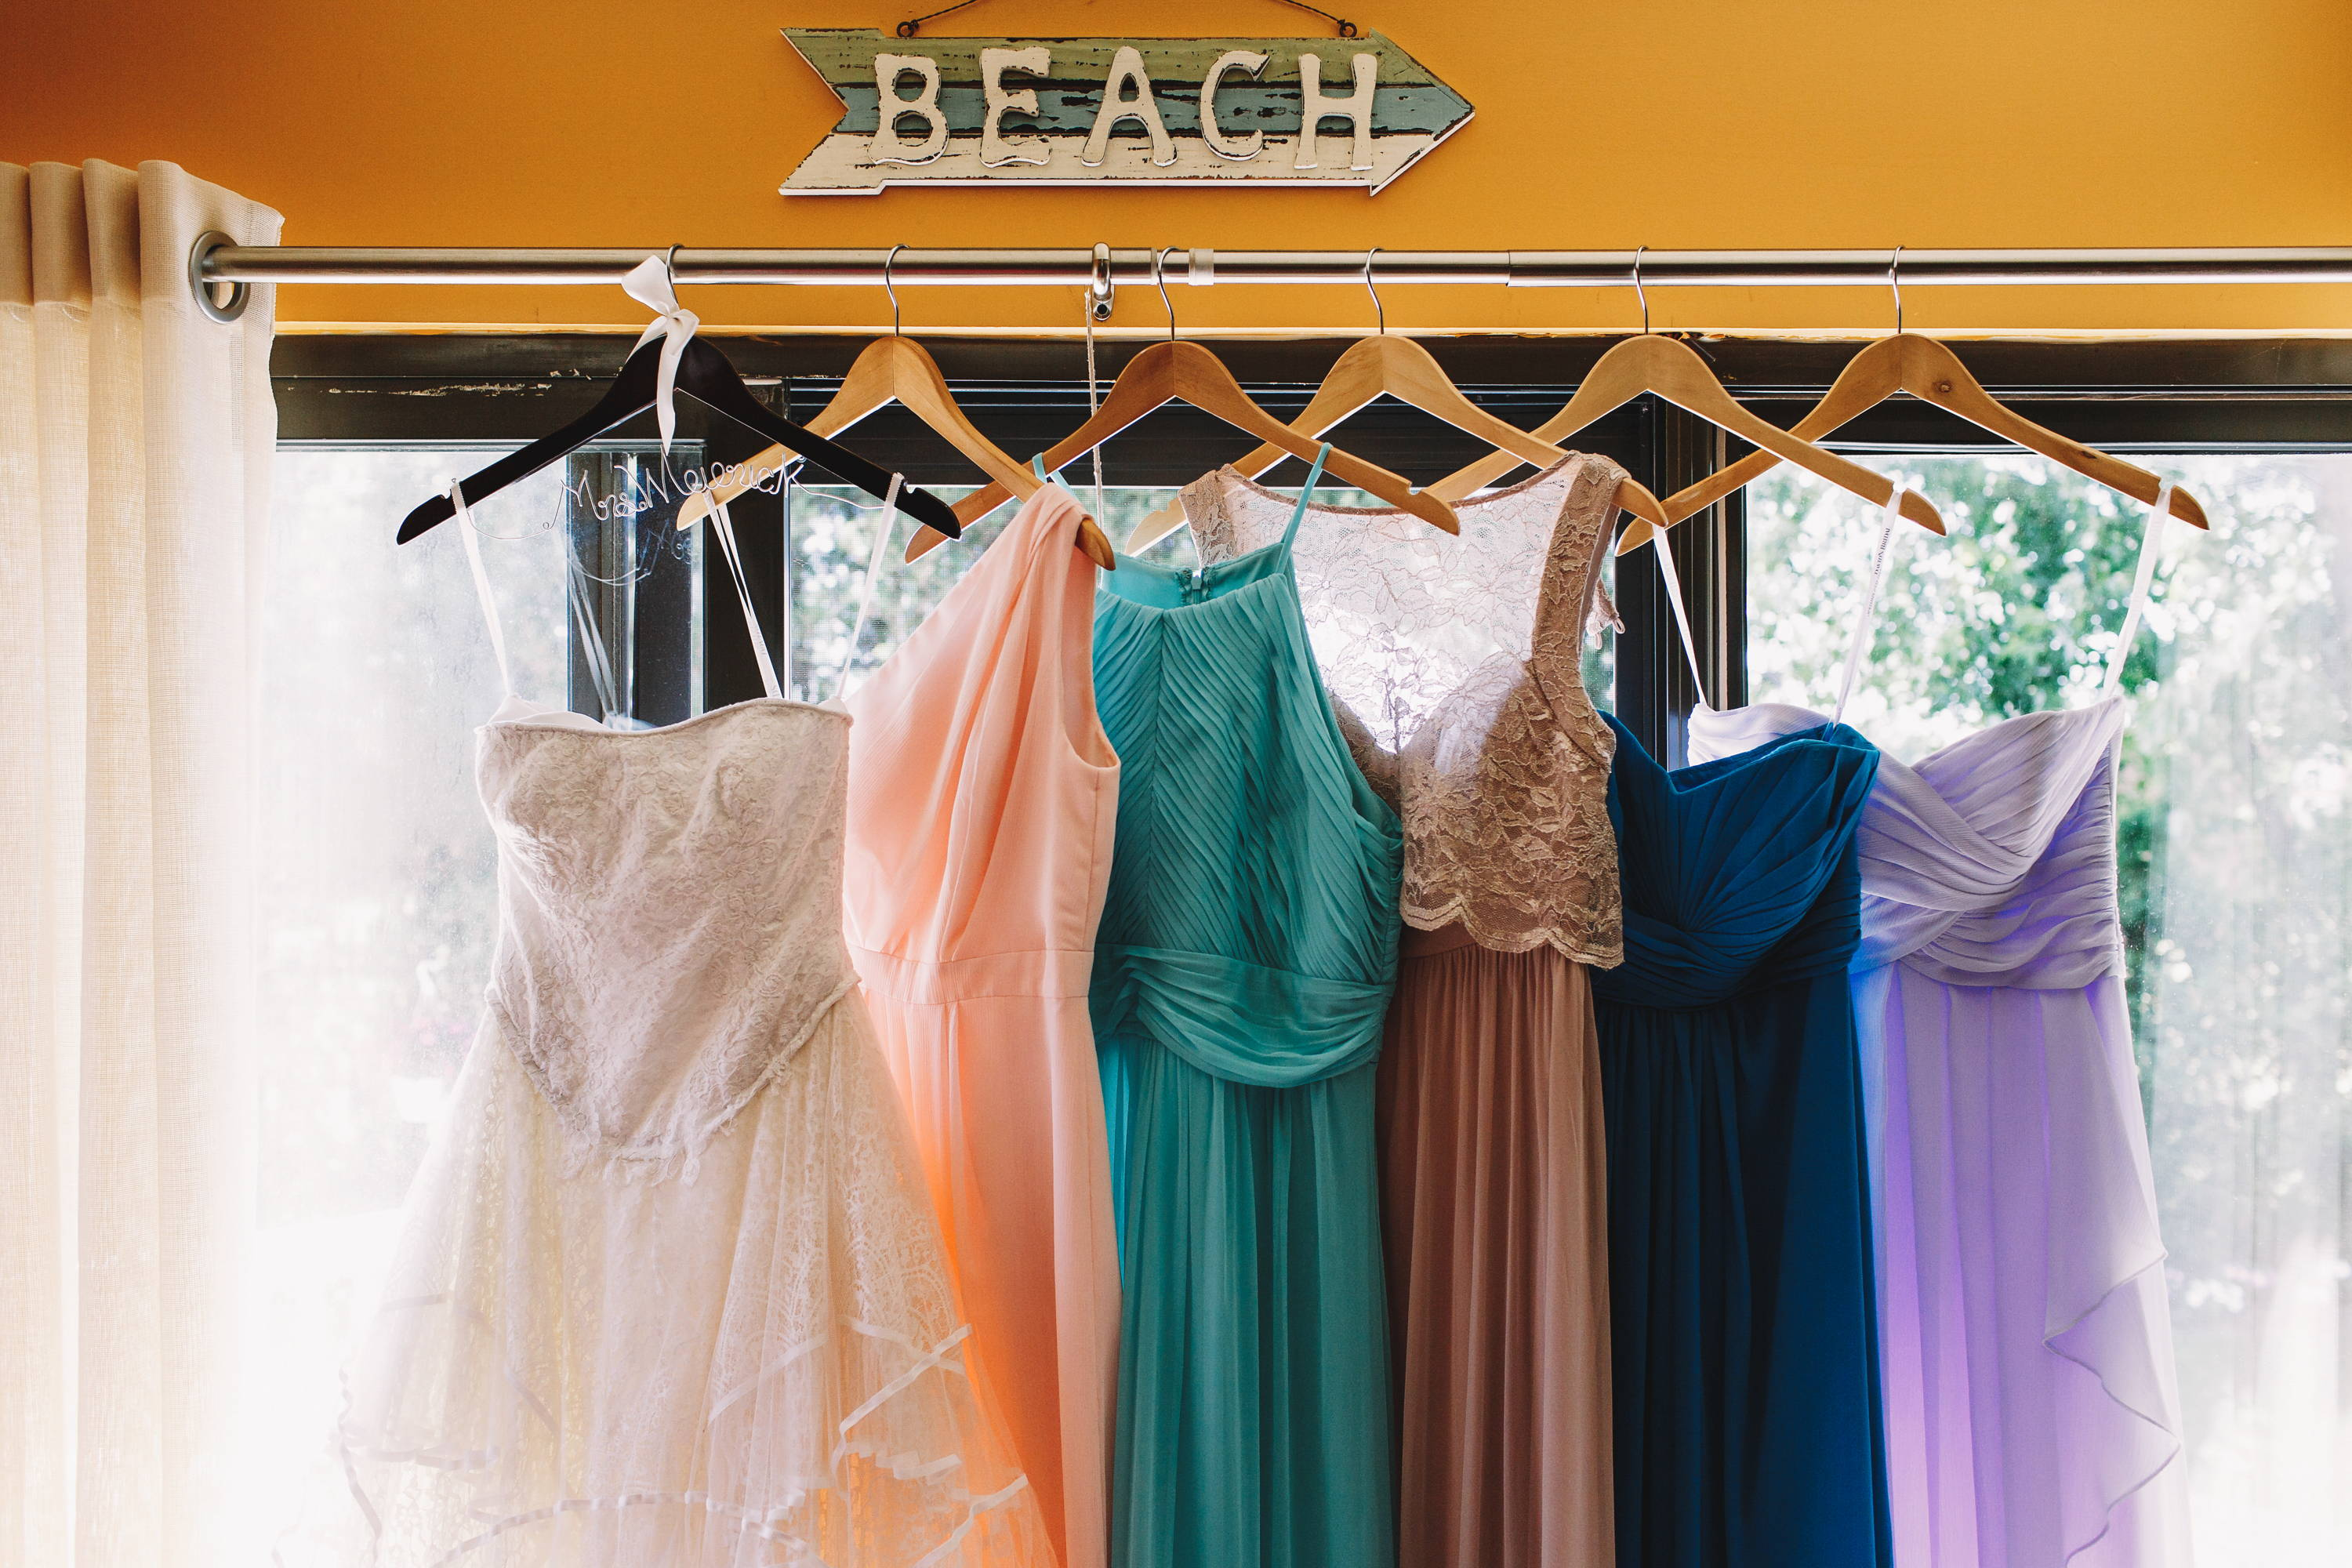 Beach sign and different colored bridesmaid dresses